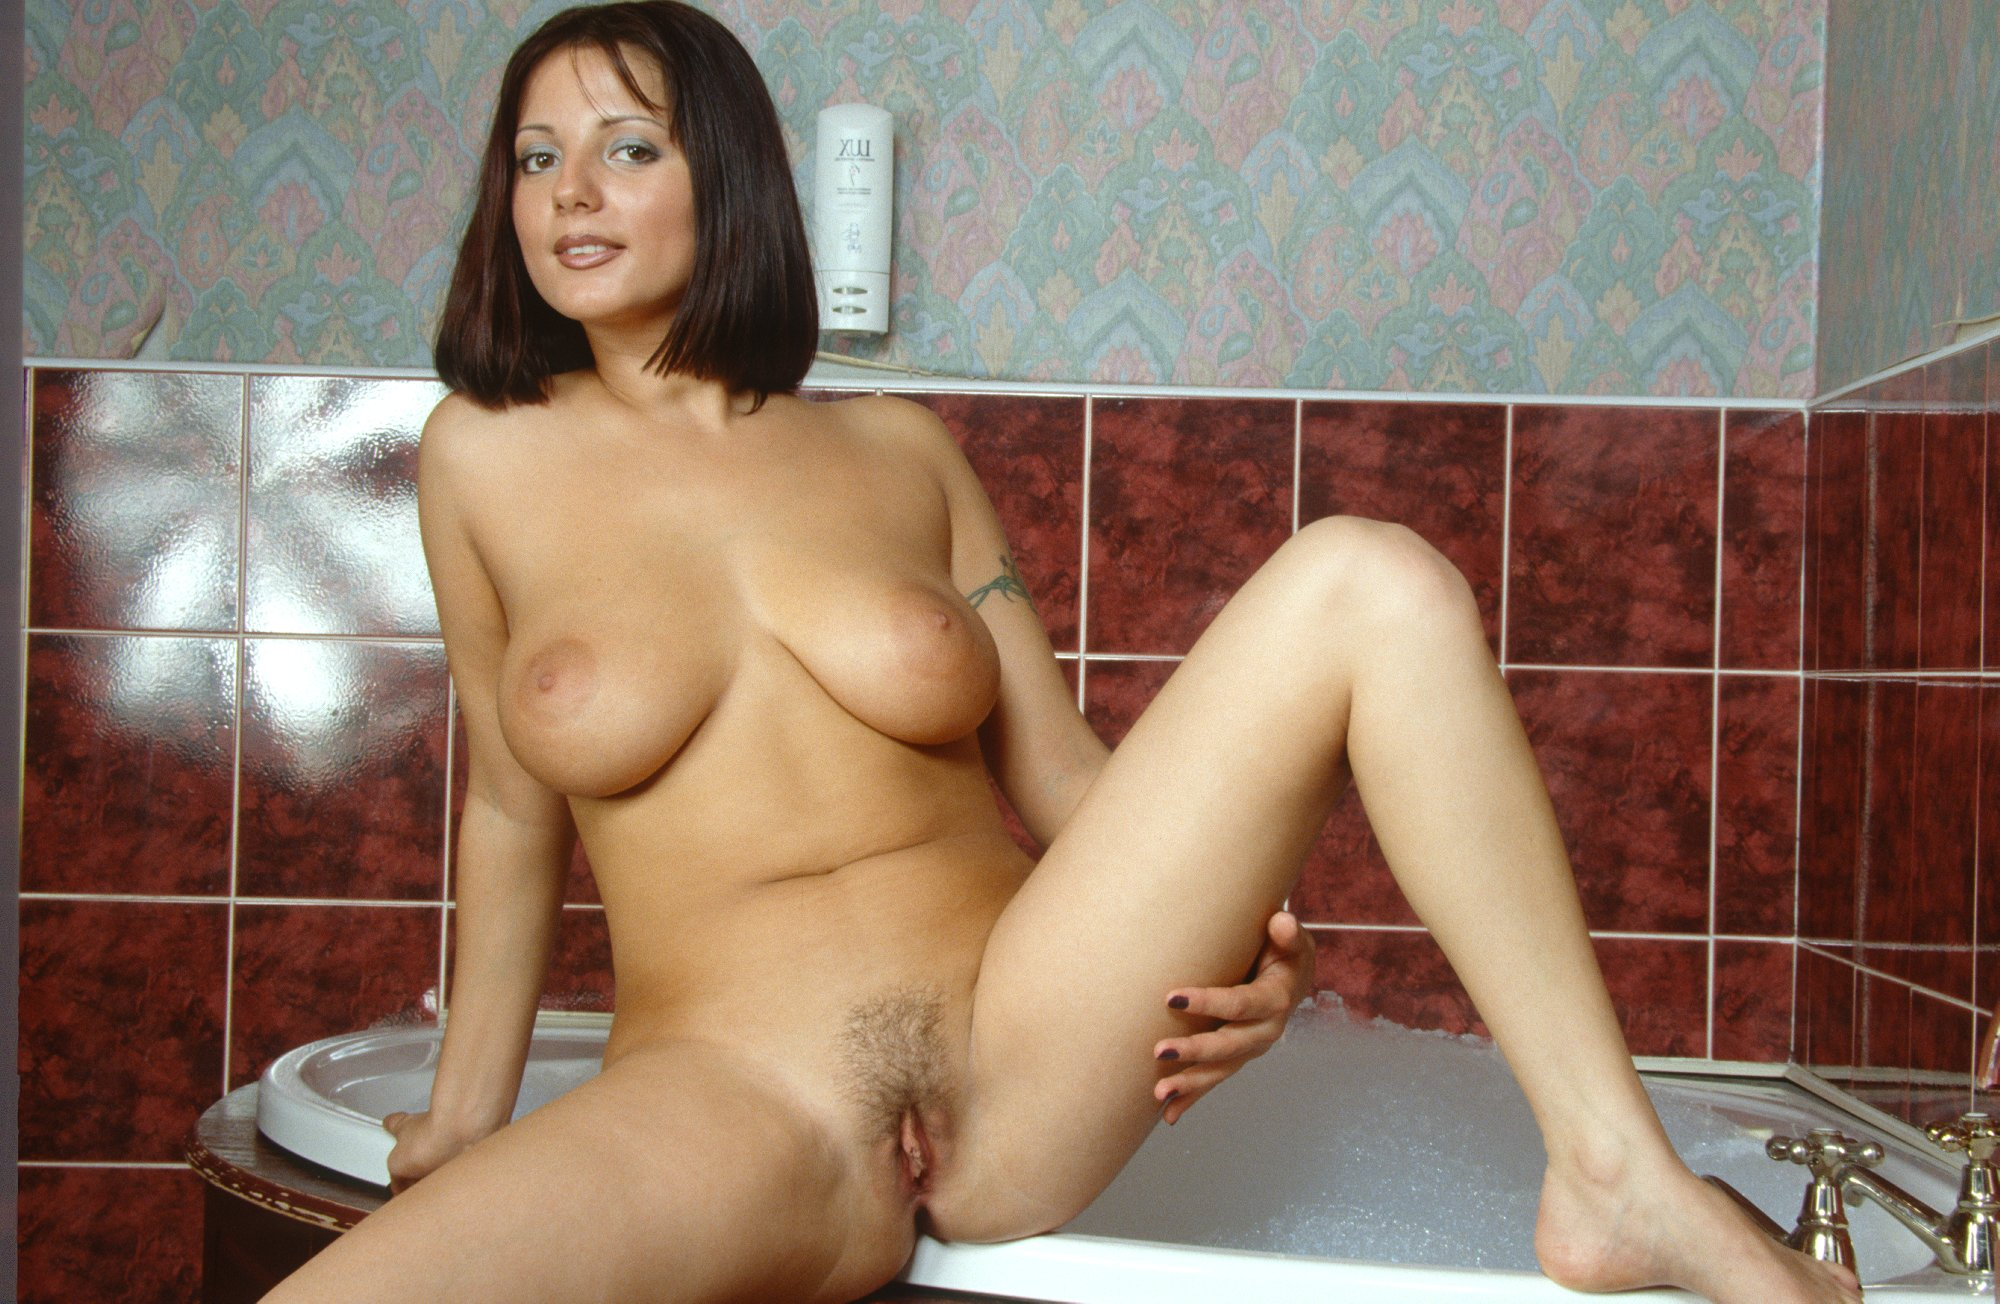 goth girl gallery nude